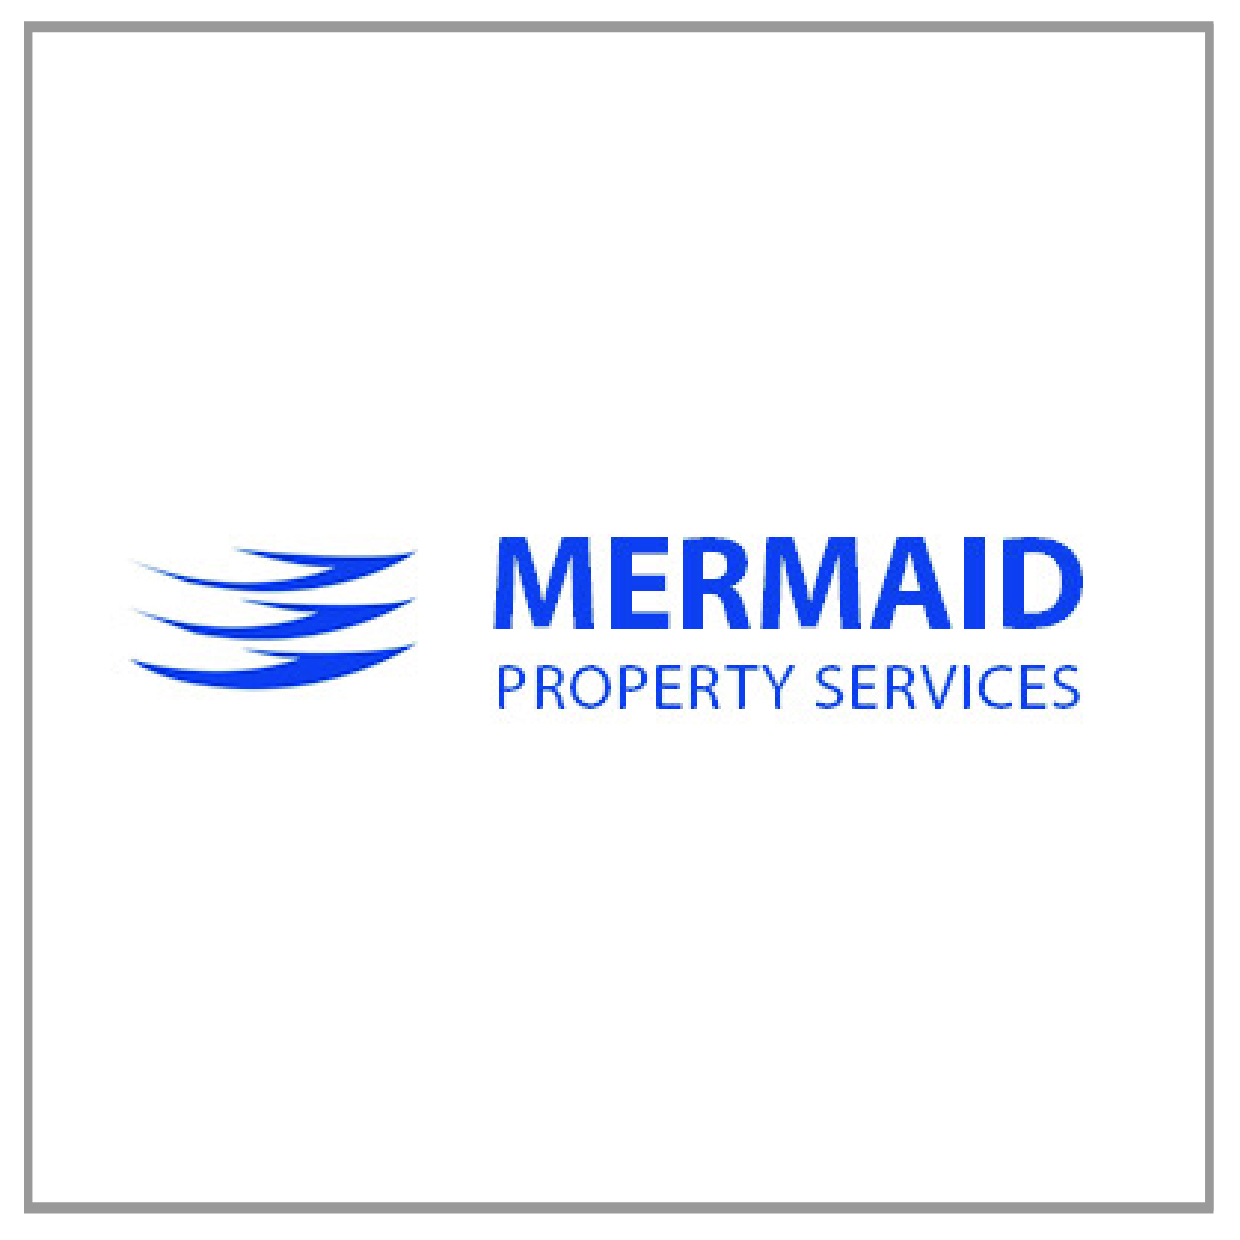 mermaid-property-services